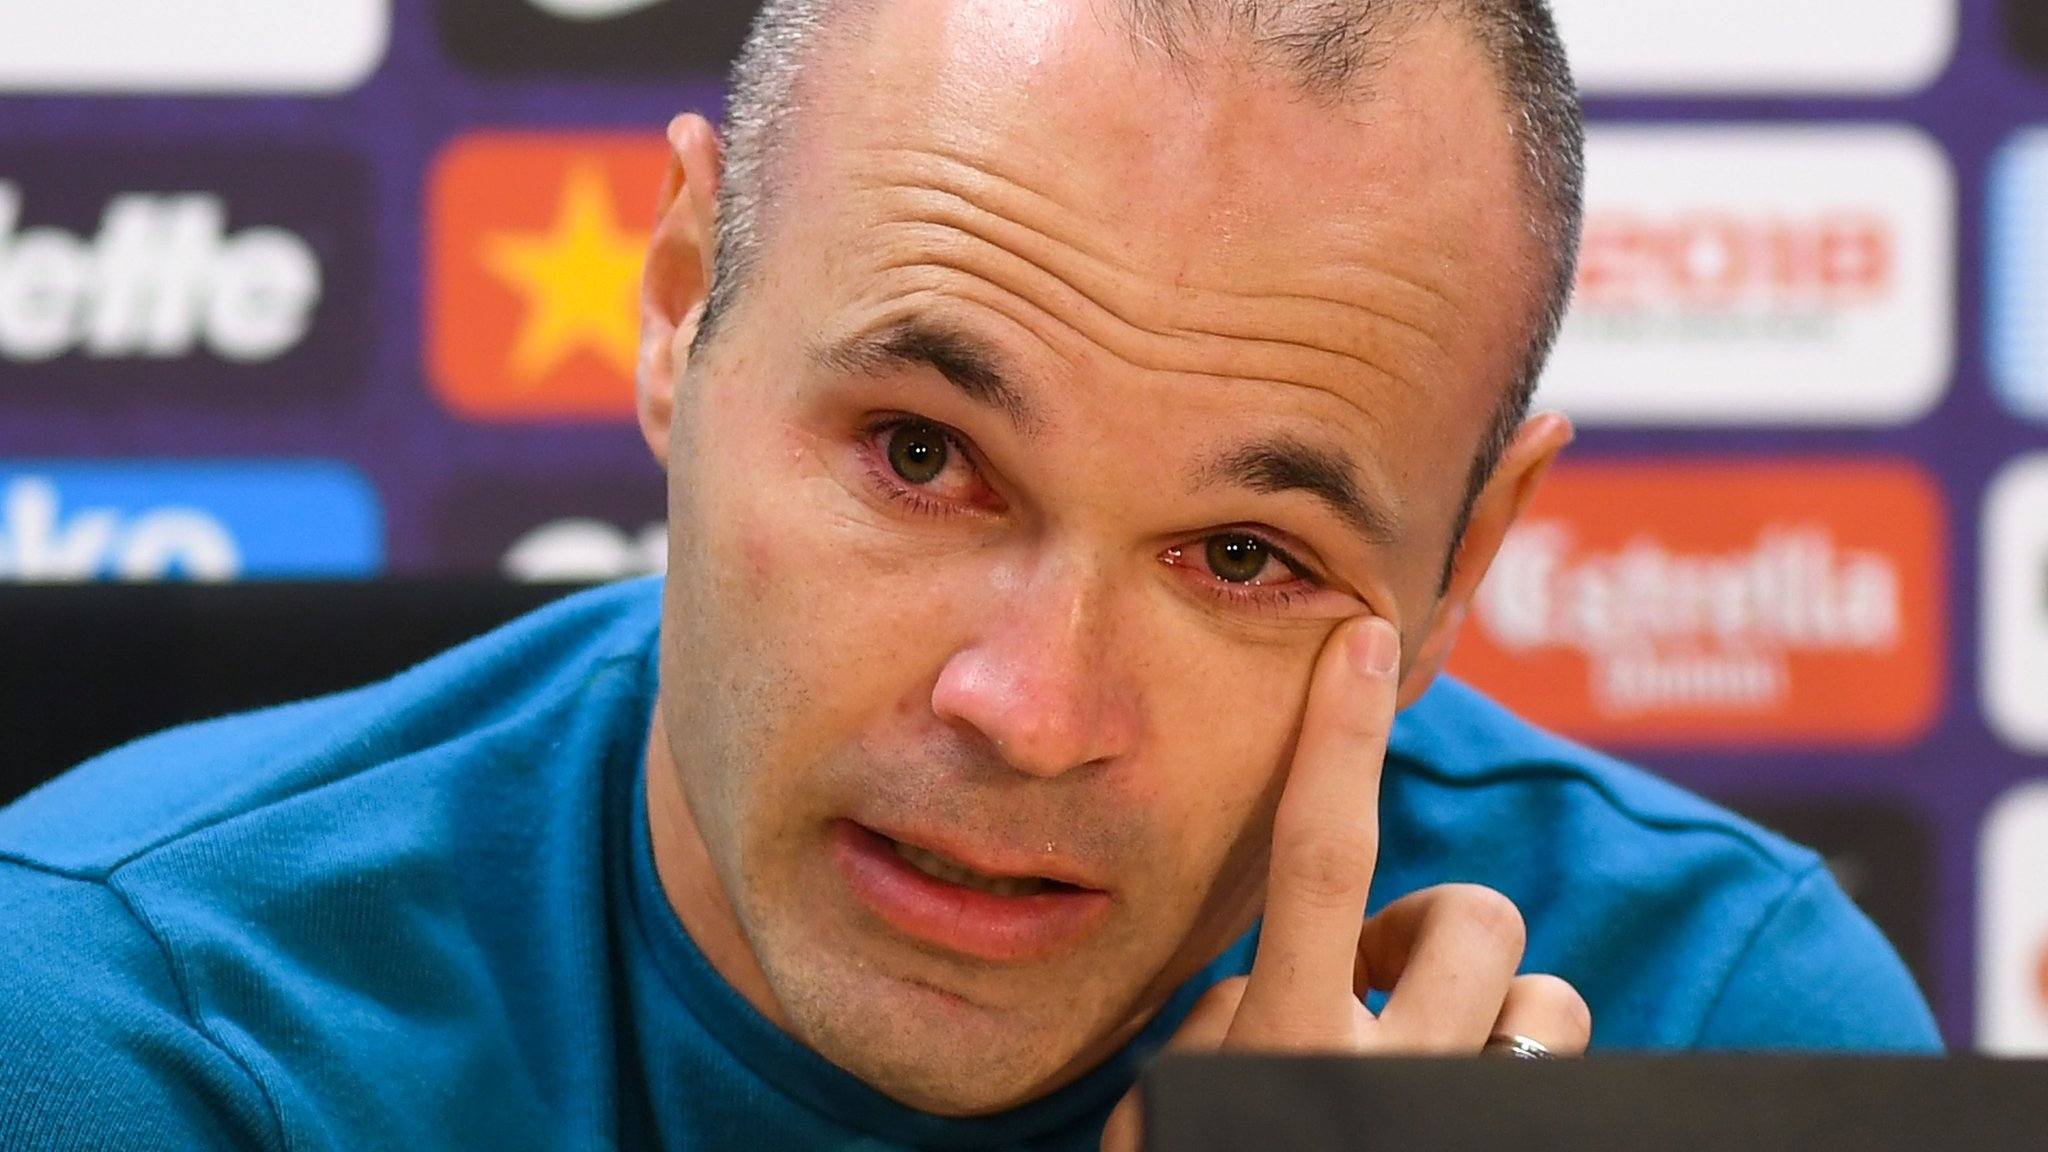 669 games, 31 trophies - Iniesta to leave Barcelona at end of season